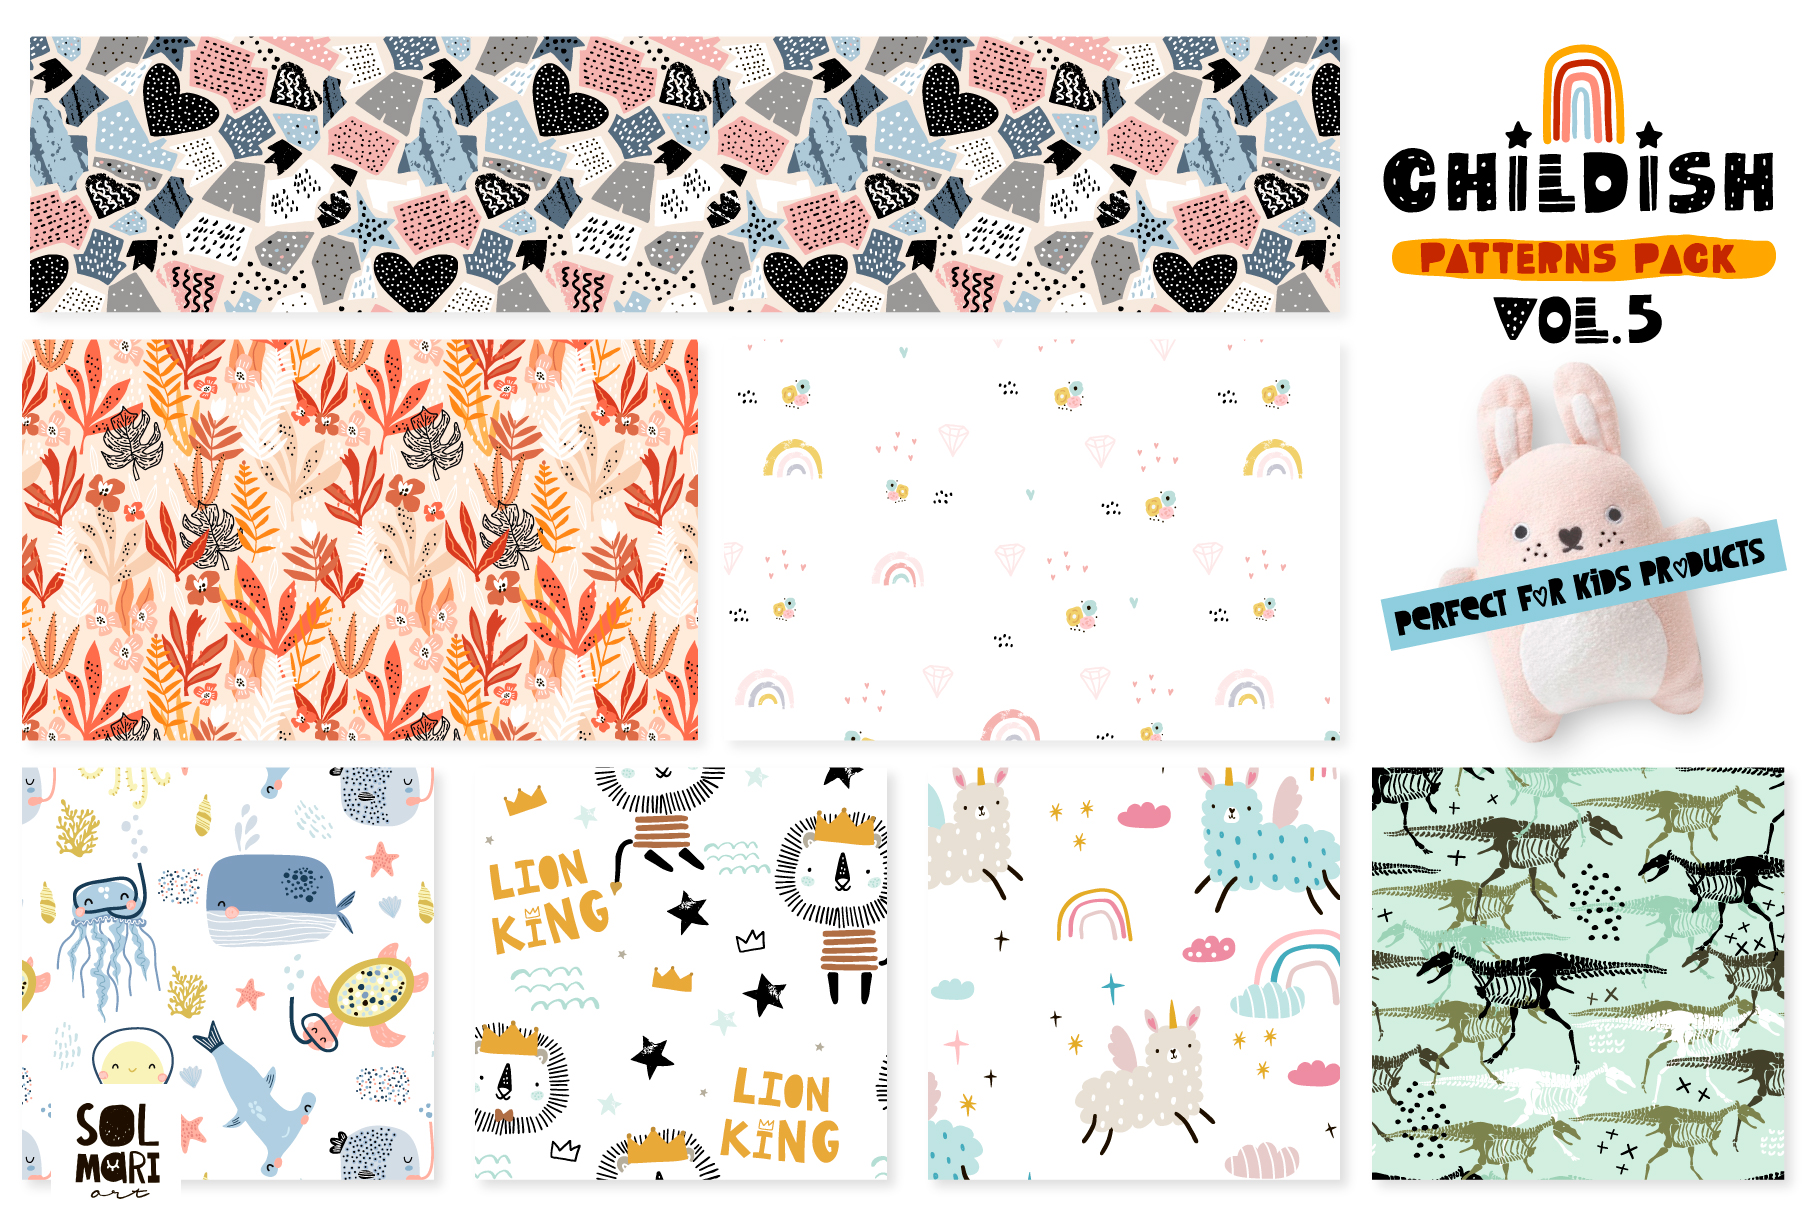 Childish patterns pack vol. 5 example image 8